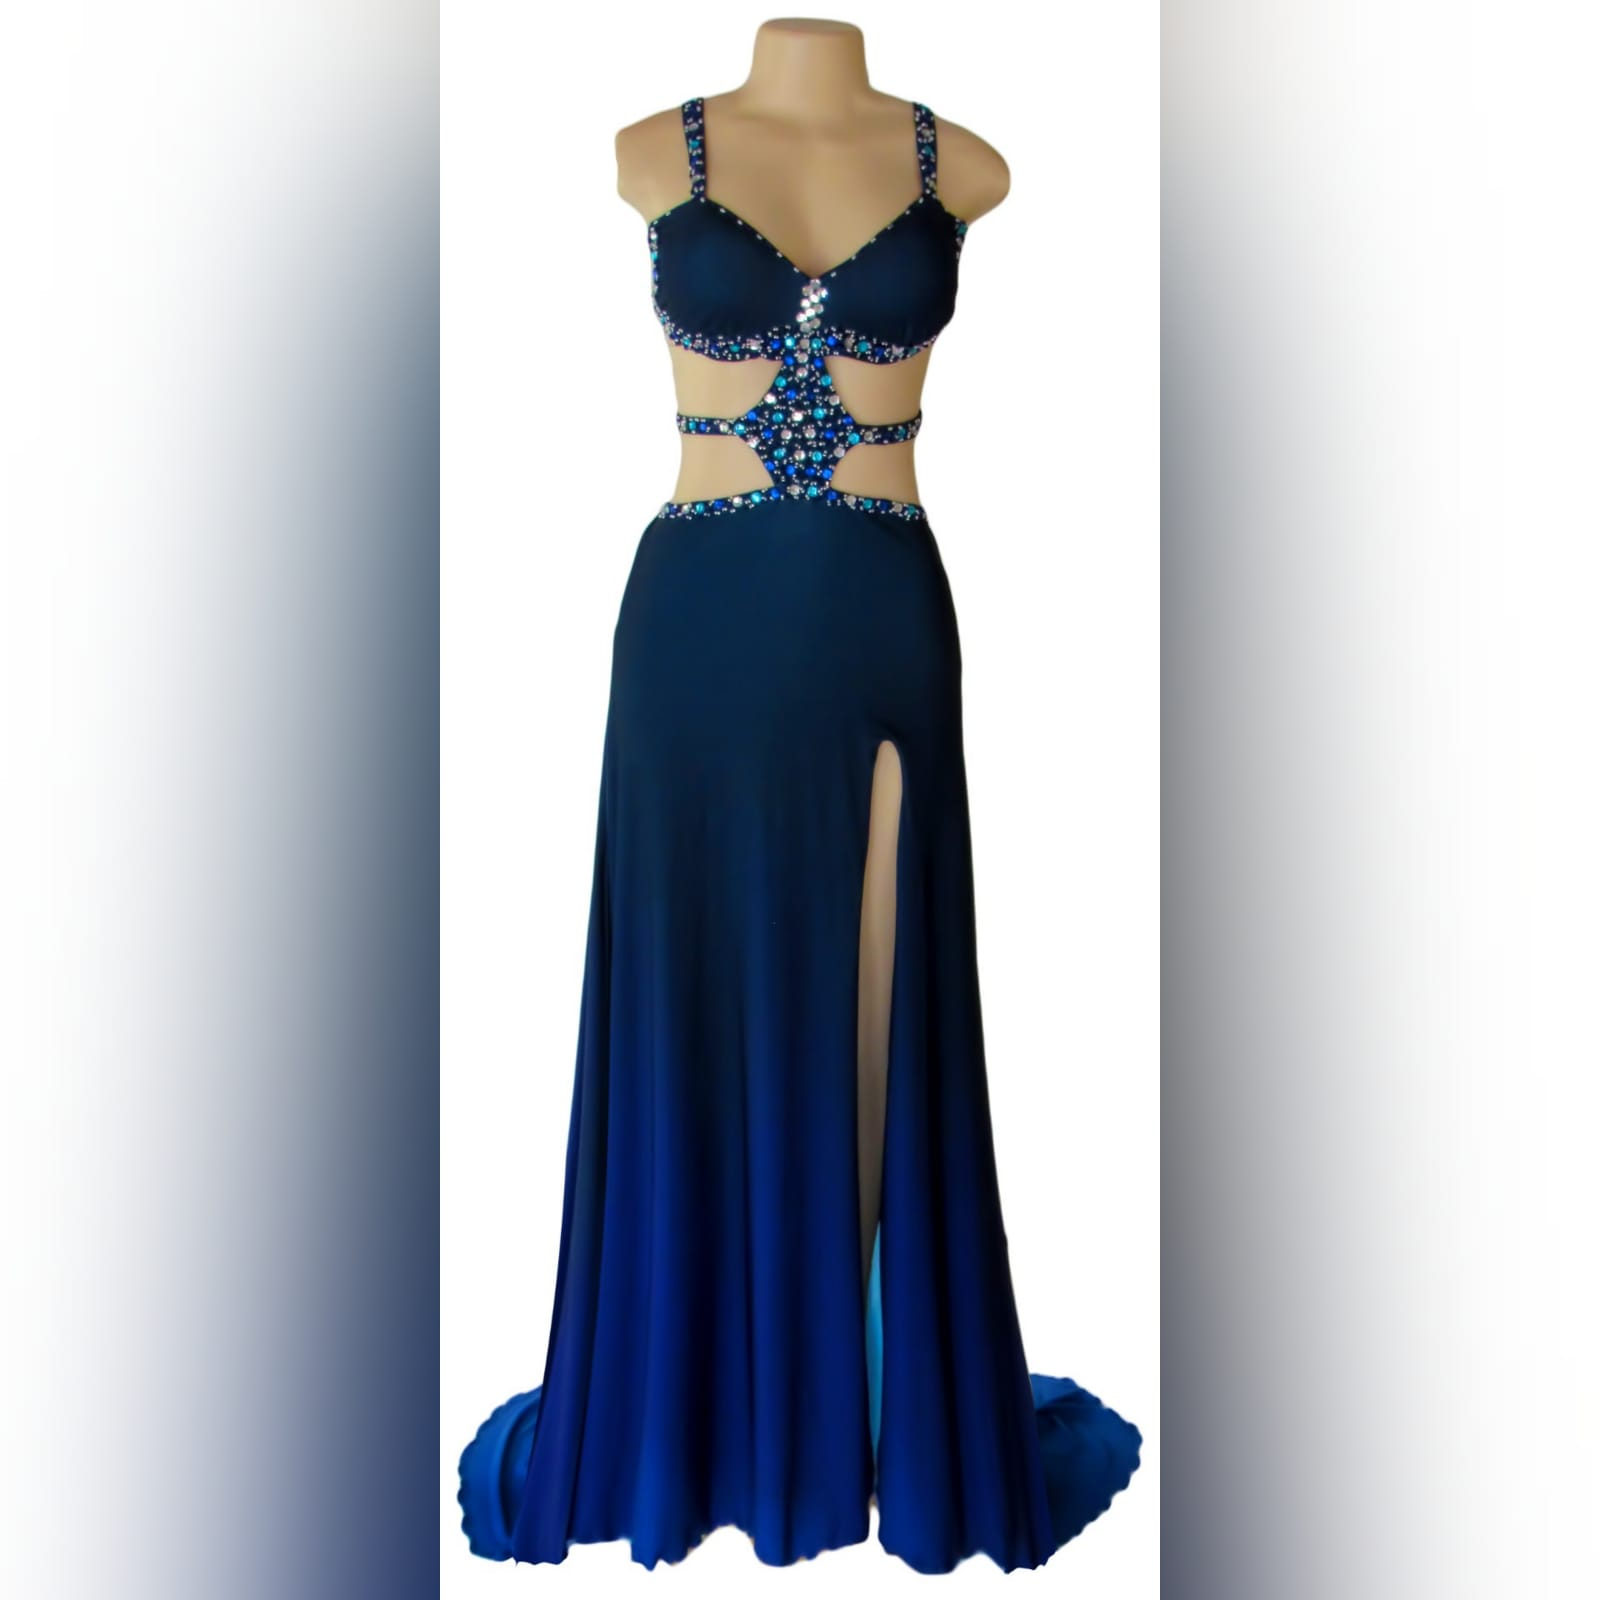 Royal blue and navy blue ombre sexy prom dress 4 royal blue and navy blue ombre sexy prom dress. With a slit and a train. With tummy and back openings detailed with silver, blue and turquoise beads.